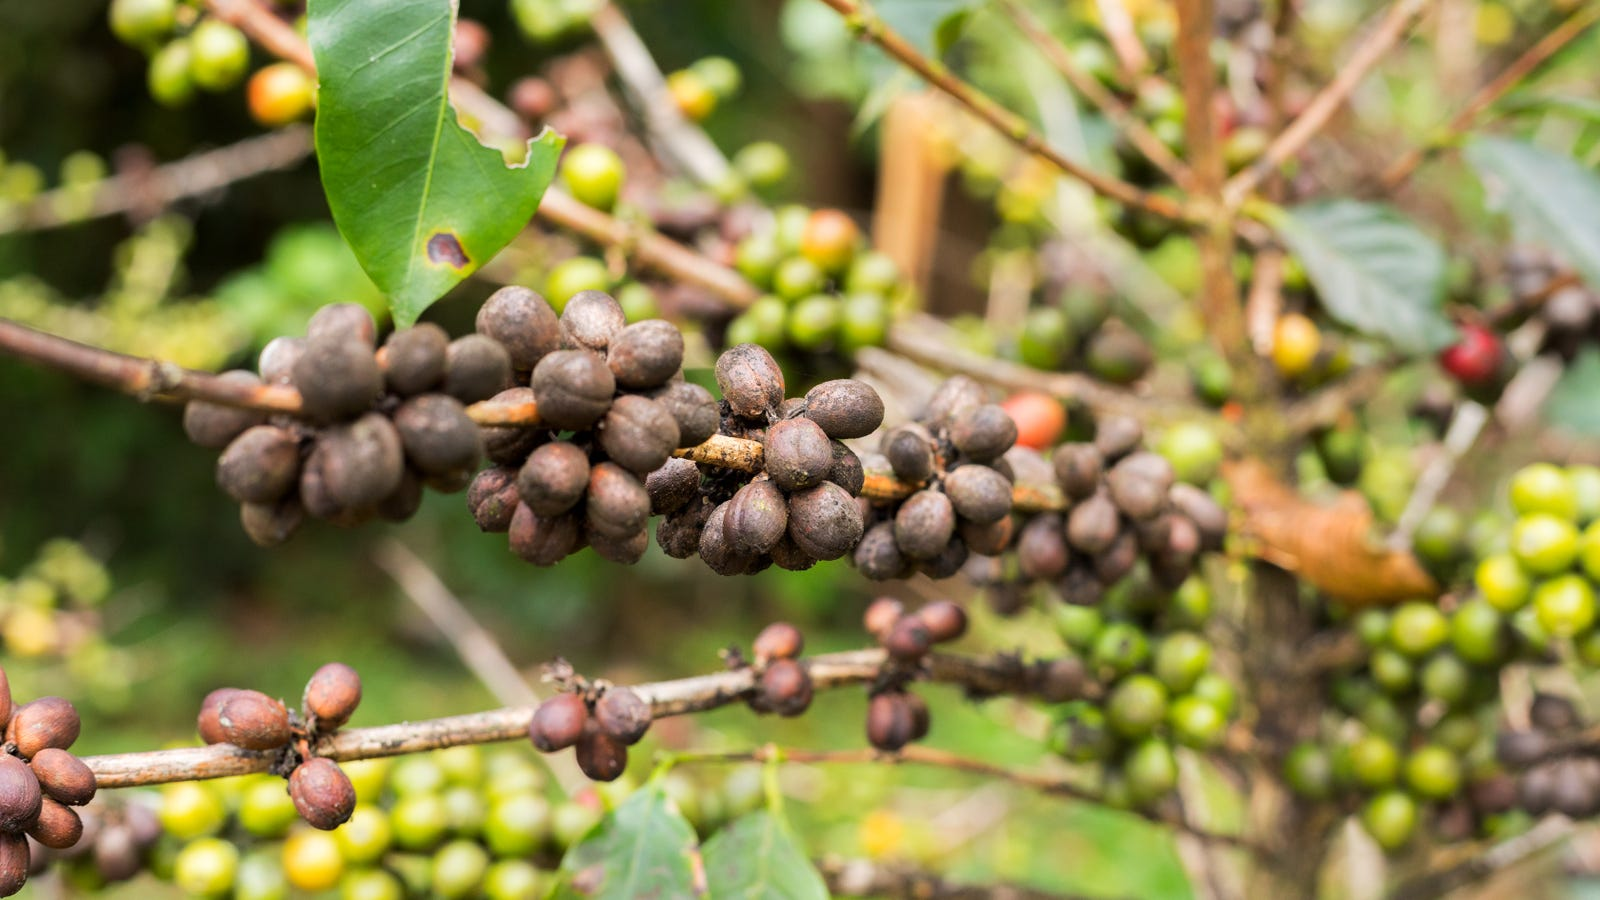 More than half of world's coffee species at risk of extinction